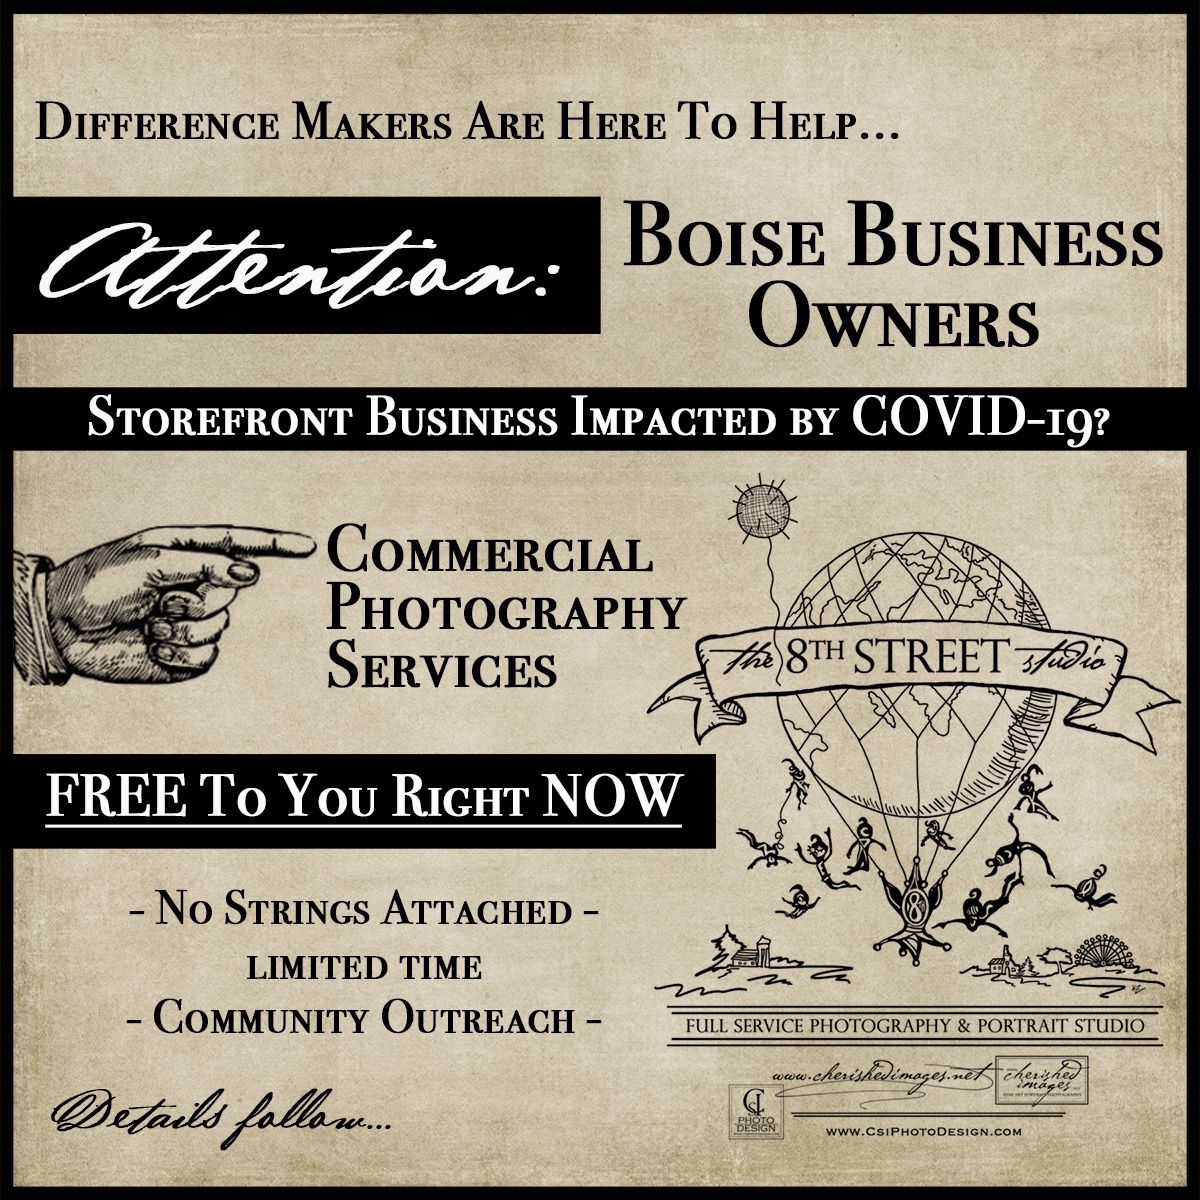 The 8th Street Studio helps other Boise businesses impacted by COVID-19 with Free commercial photography